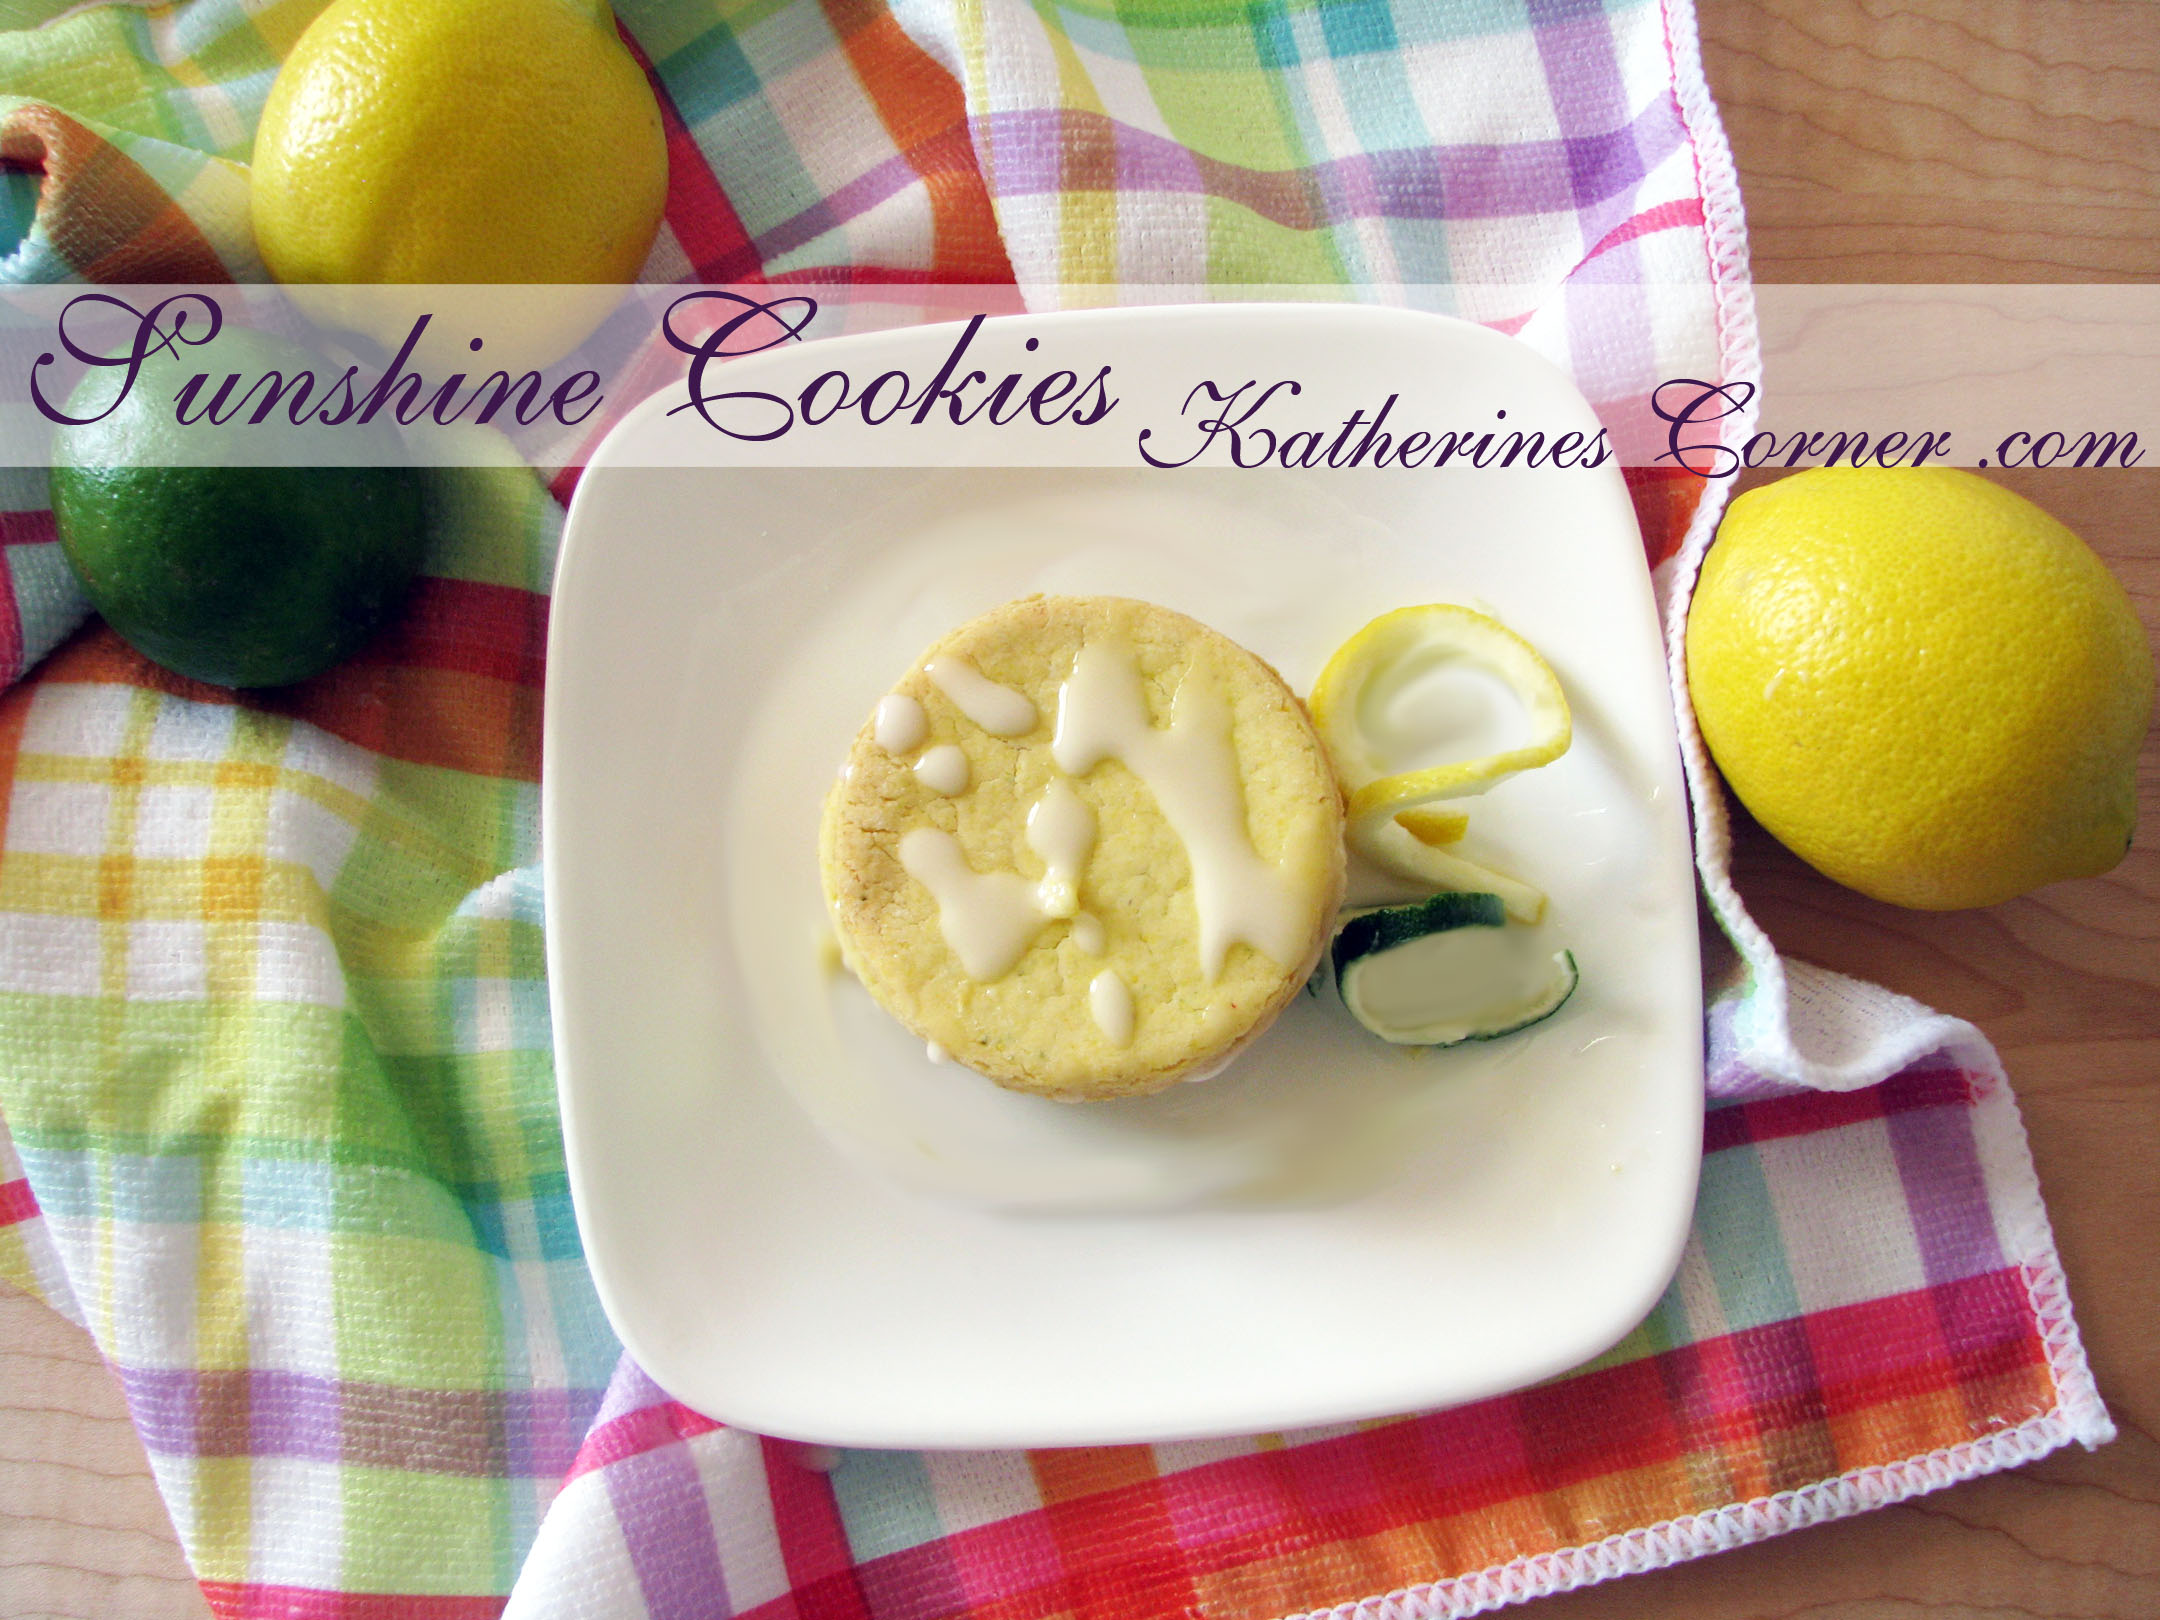 Sunshine Cookies Low Sugar Gluten Free